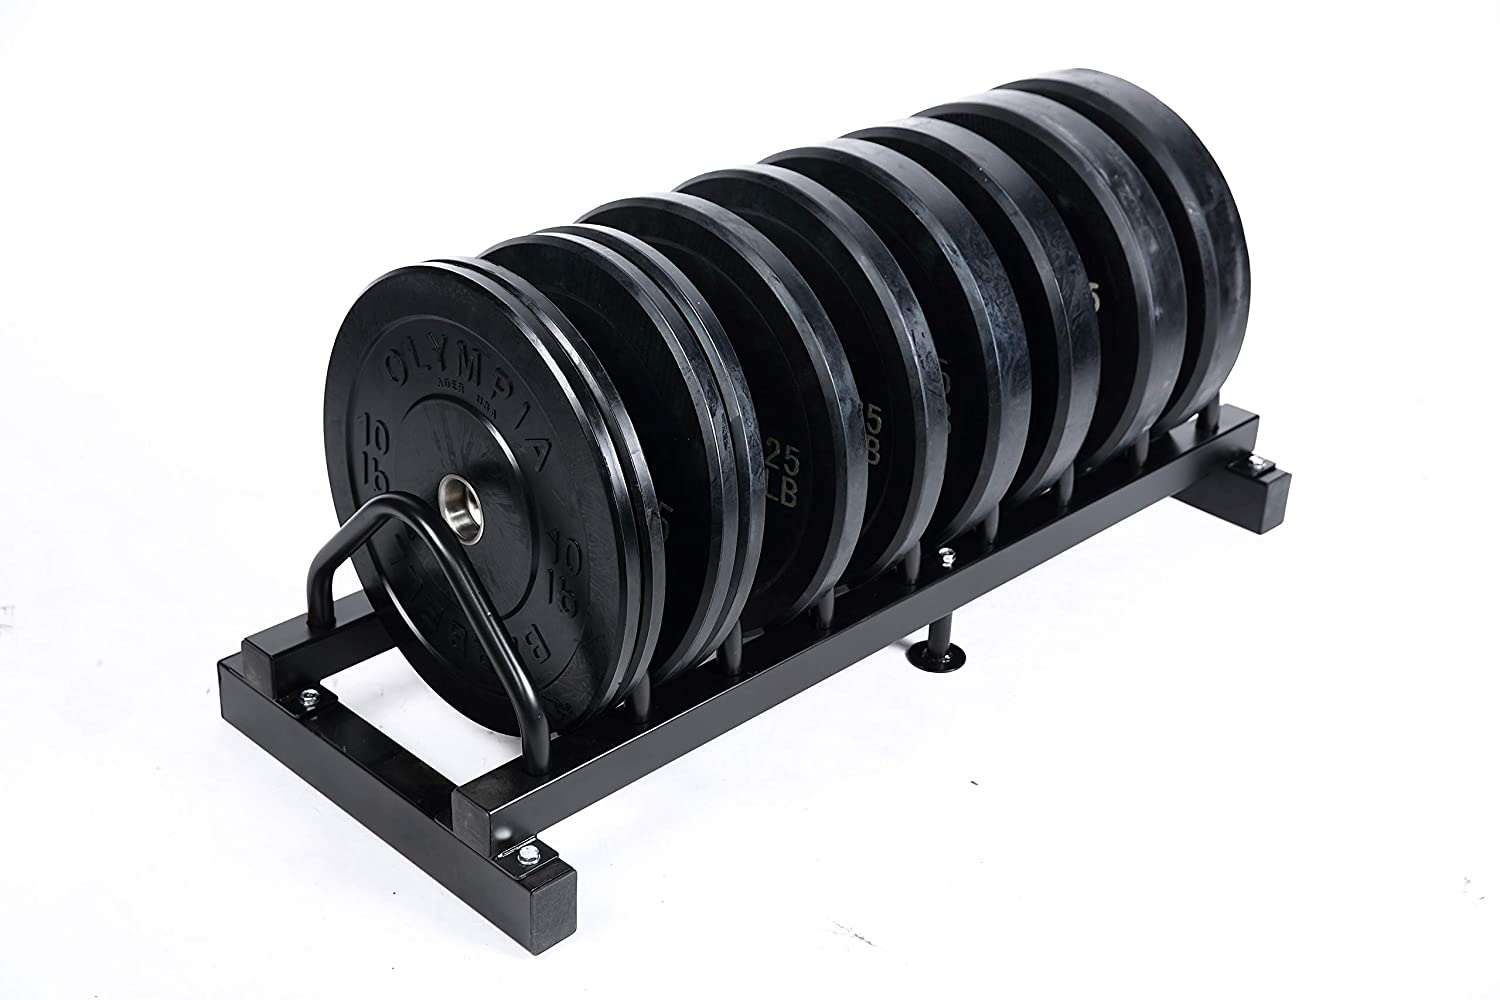 Rubber Bumper Plate Black 5 Pair Set with Ader Plate Rack, Great Gift